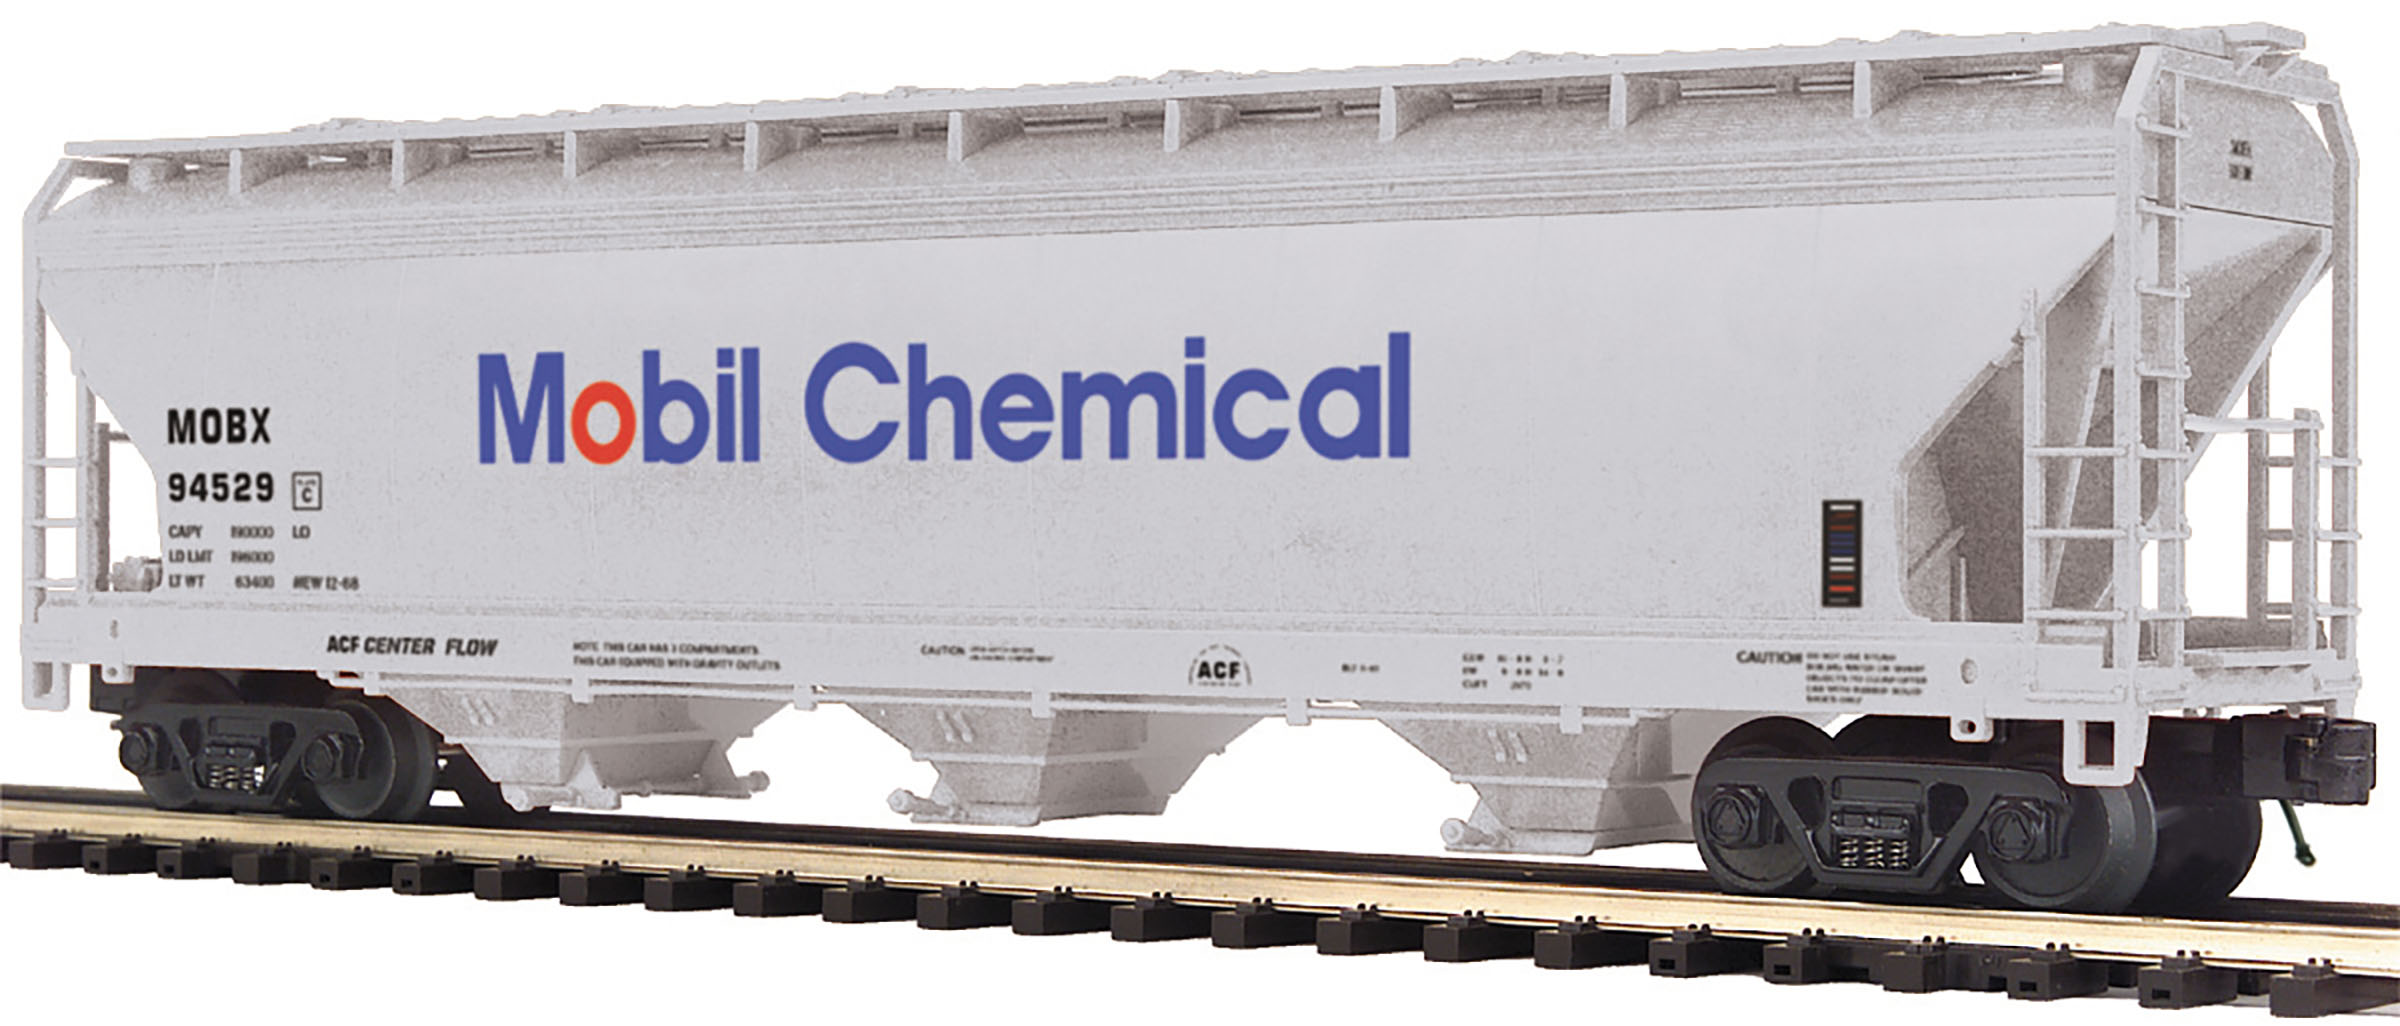 MTH2097897 MTH Electric Trains O 3-Bay Centerflow Hopper, Mobil Chemical #94529